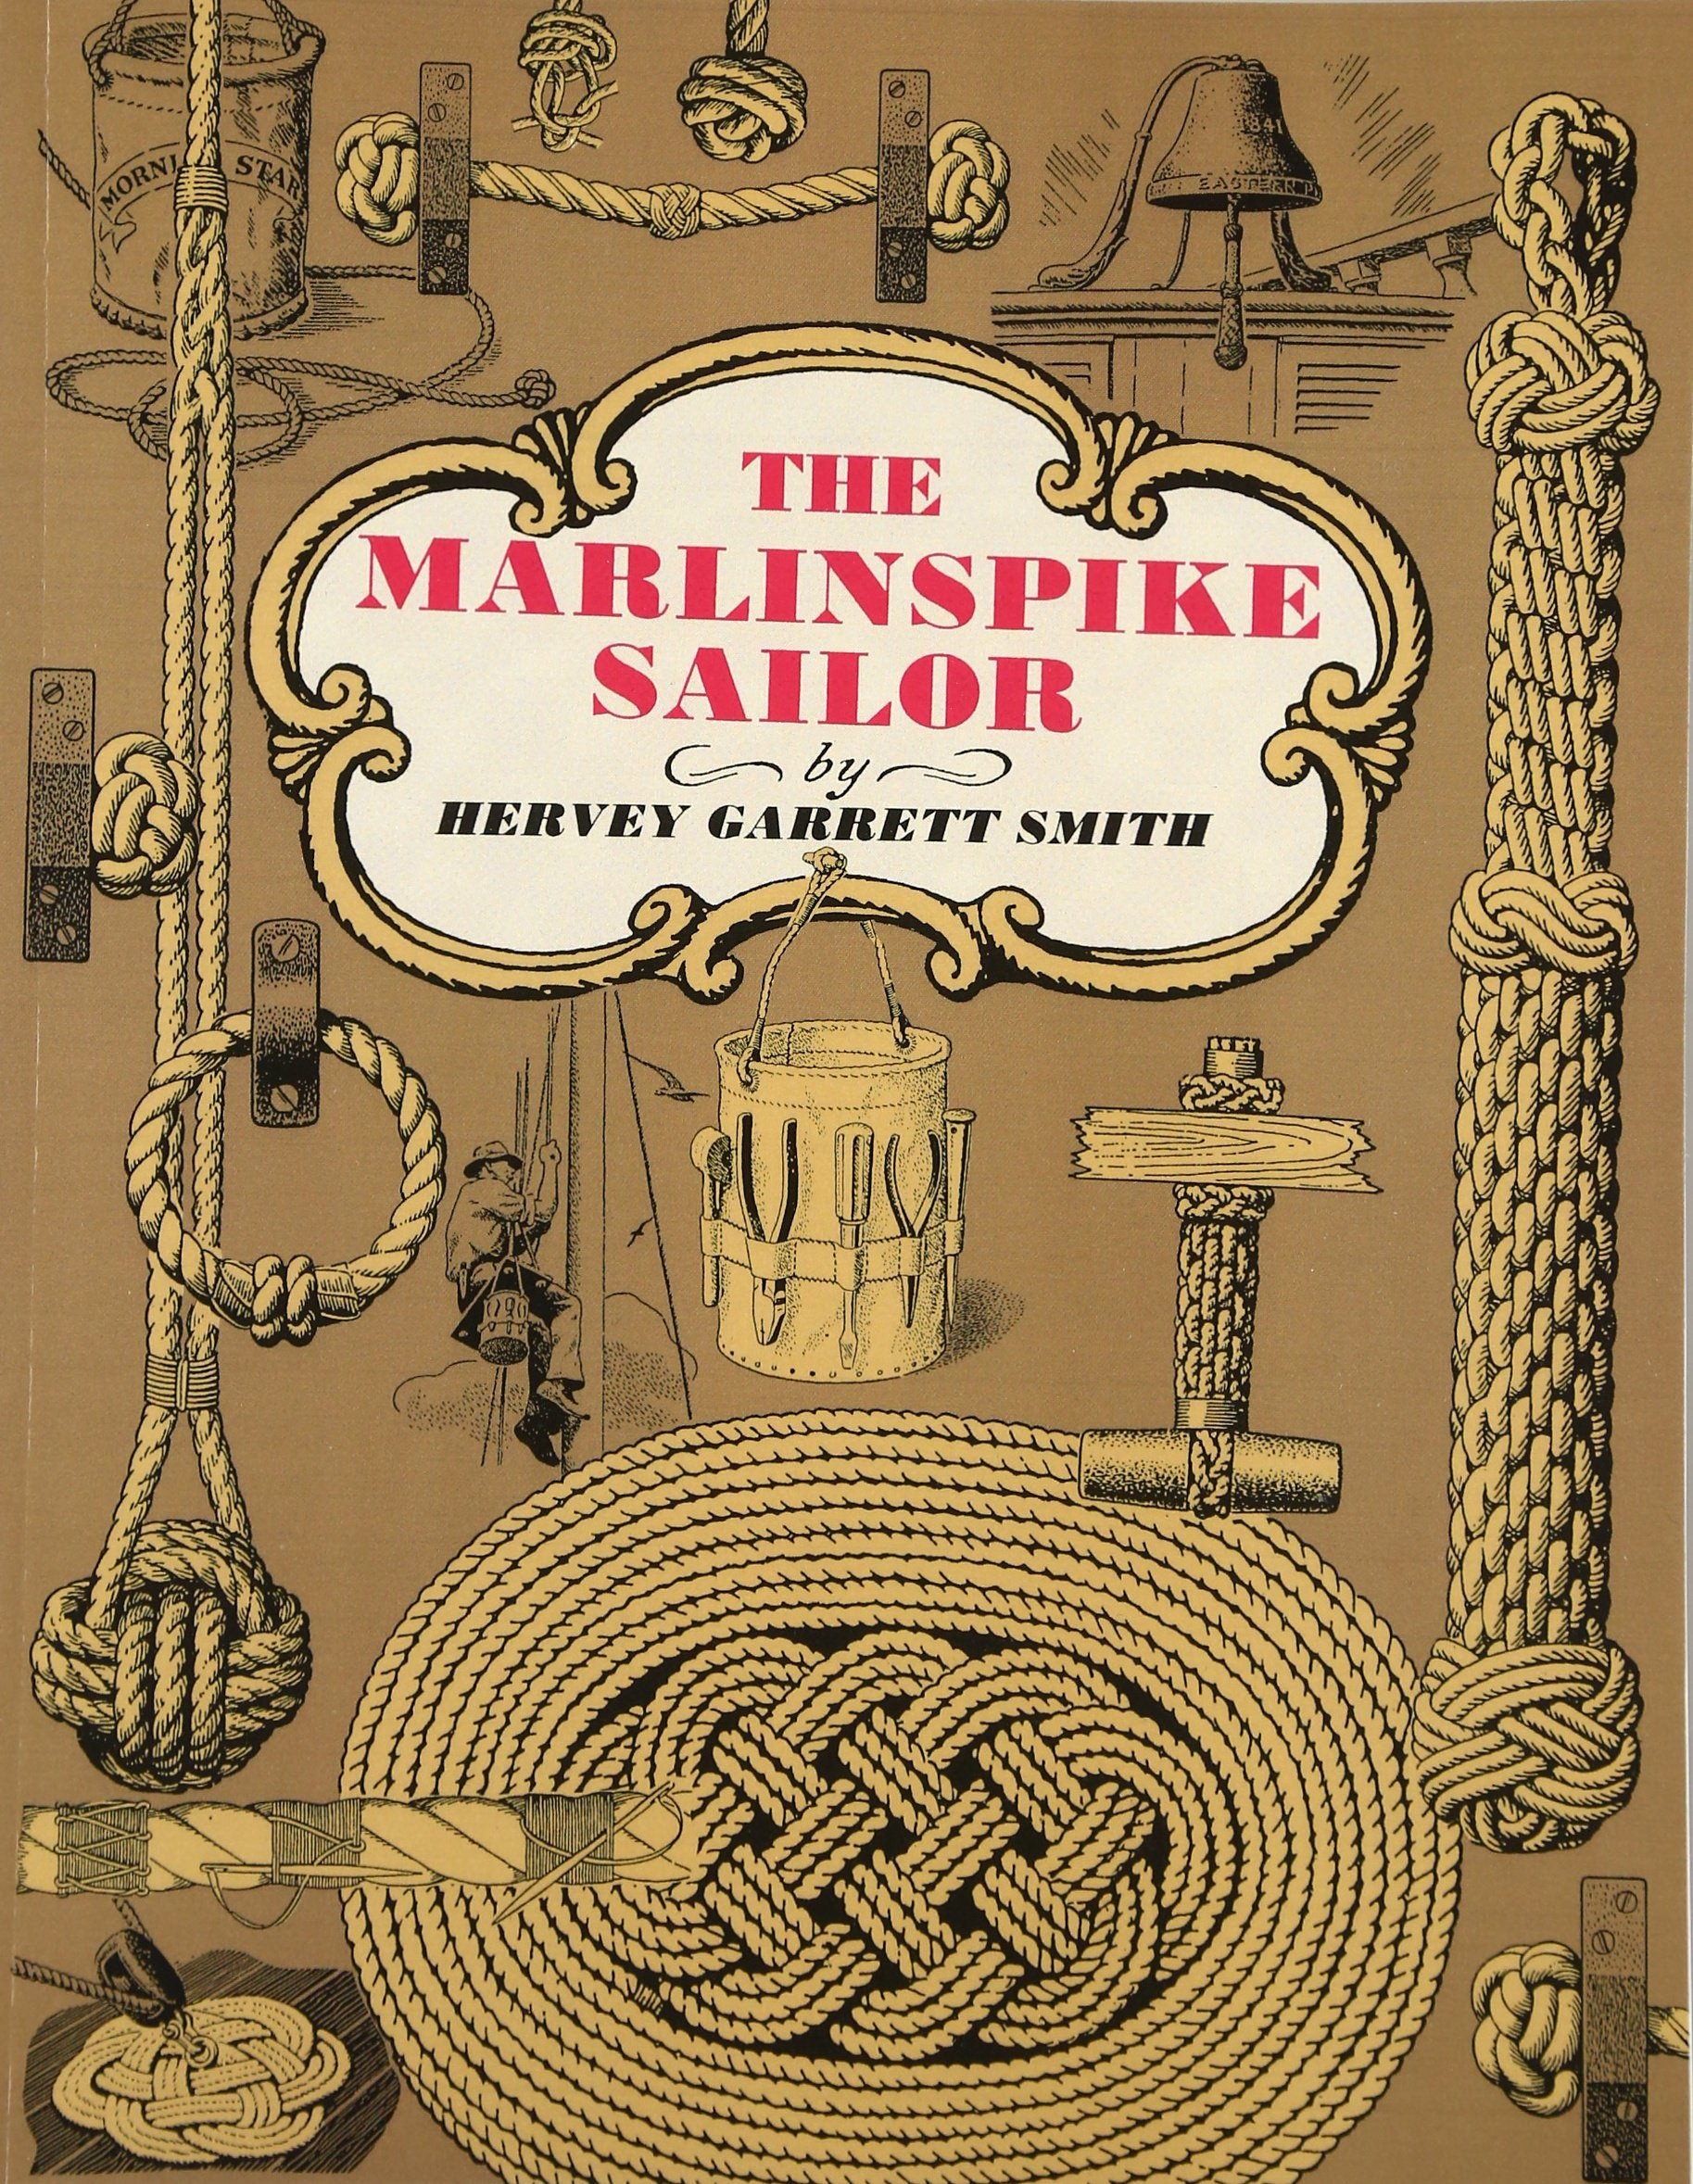 The Marlinspike Sailor